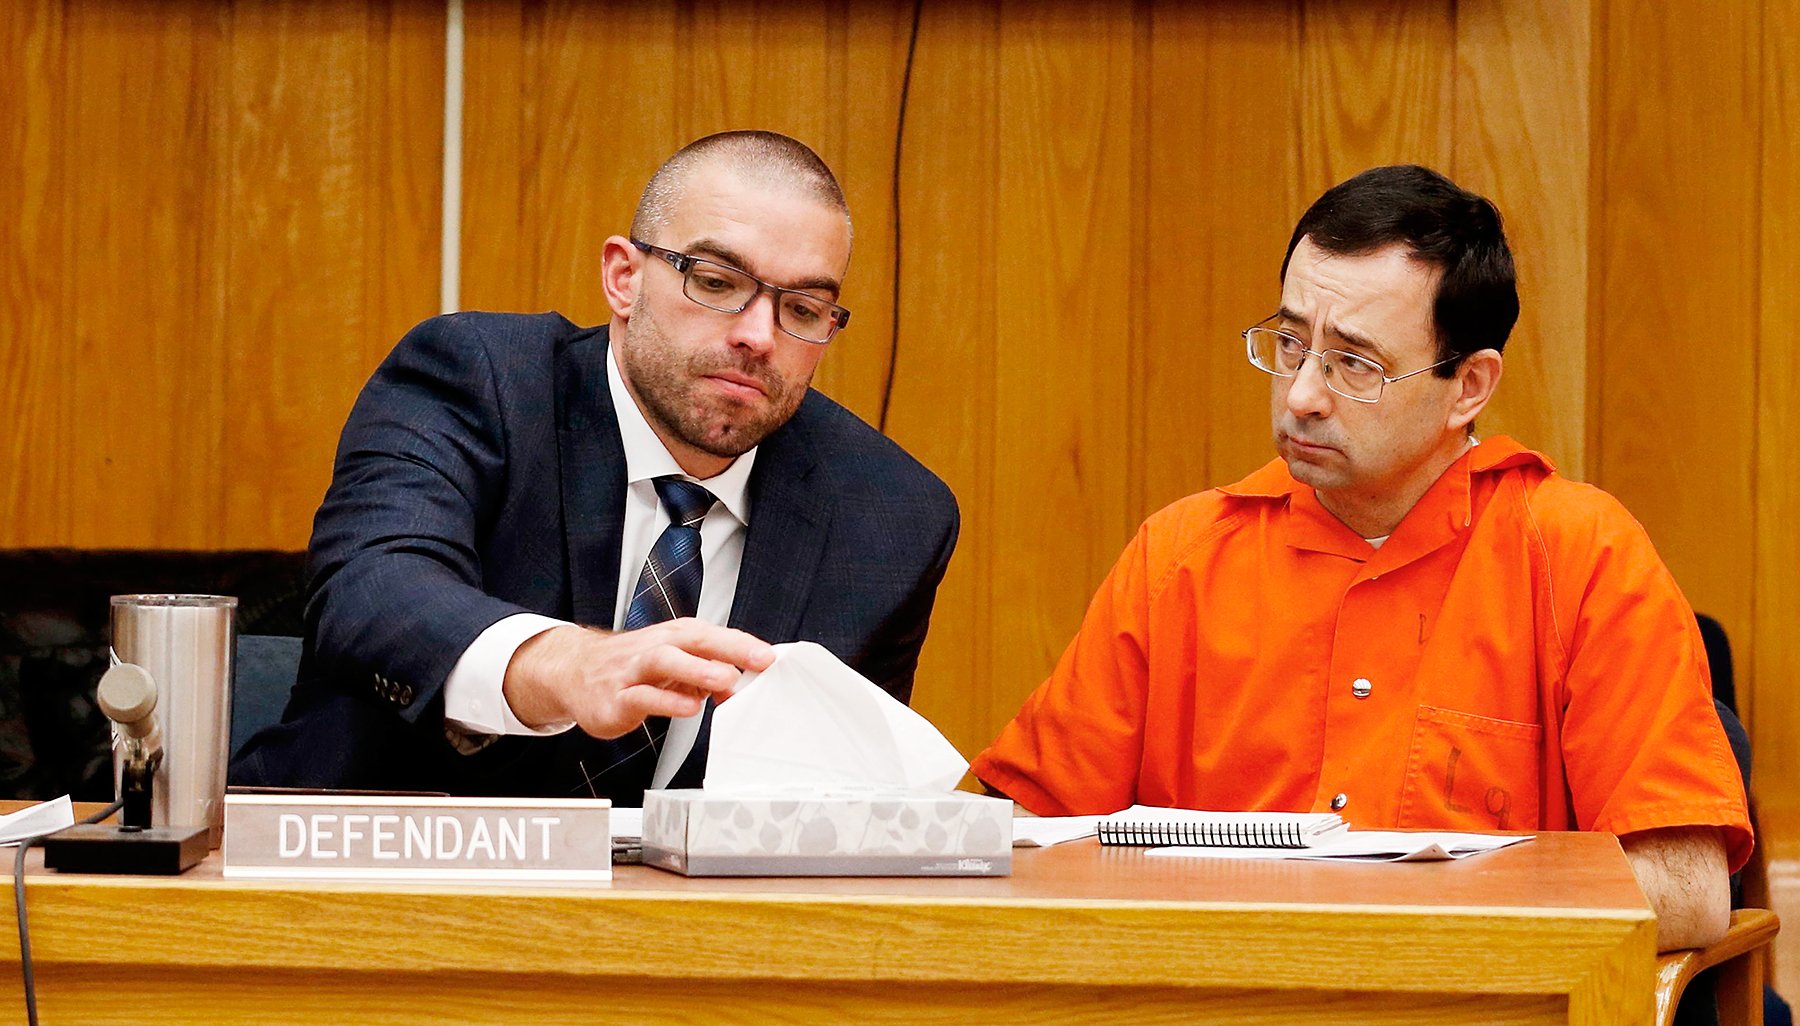 Father of Larry Nassar Victim Tries to Attack Him in Court - photo#24